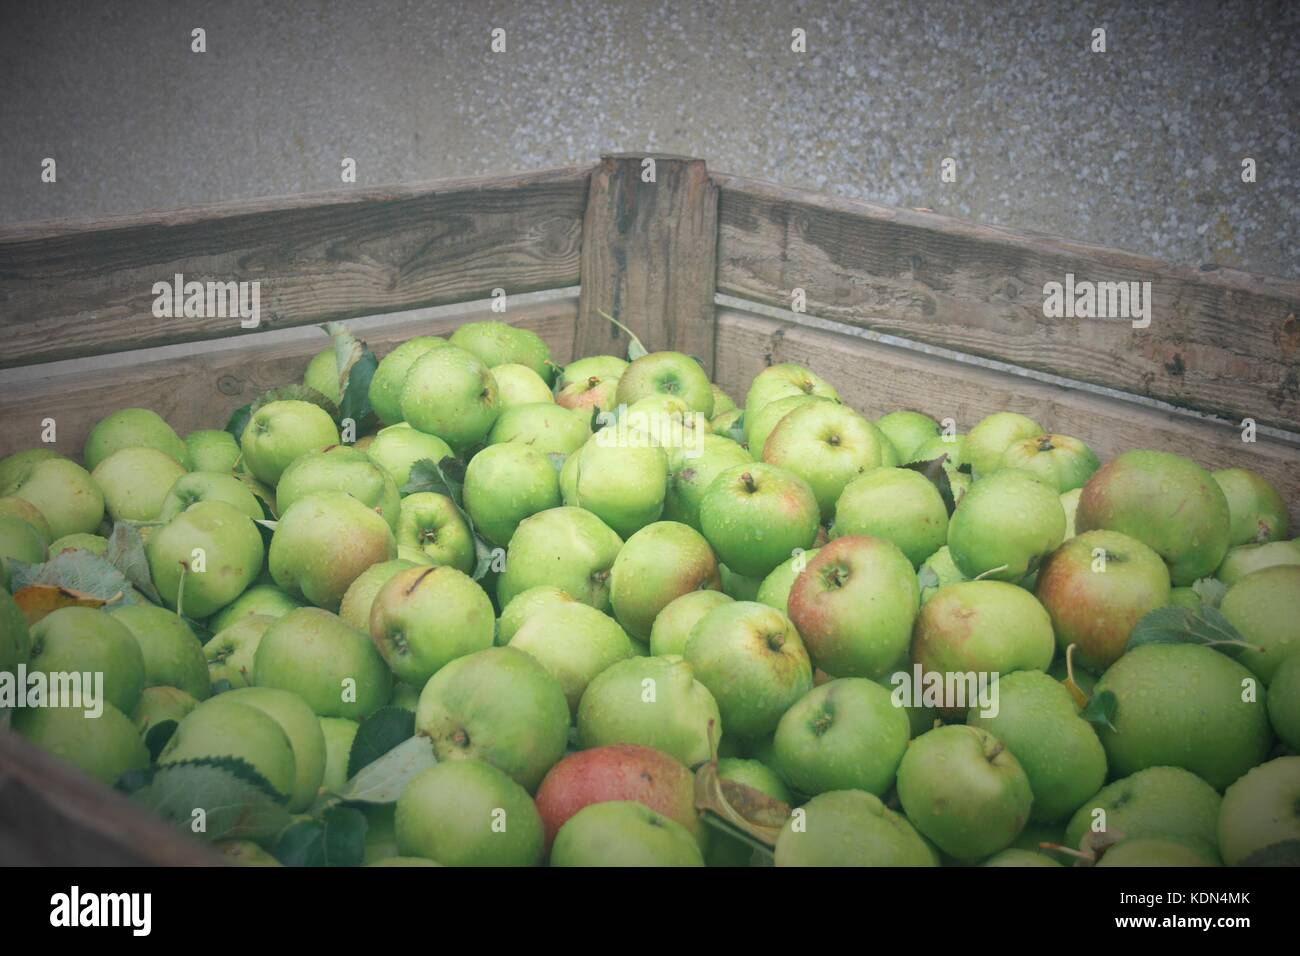 A Full Apple Bin Of Picked Bramley Apples In Co Armagh, Northern Ireland - Stock Image